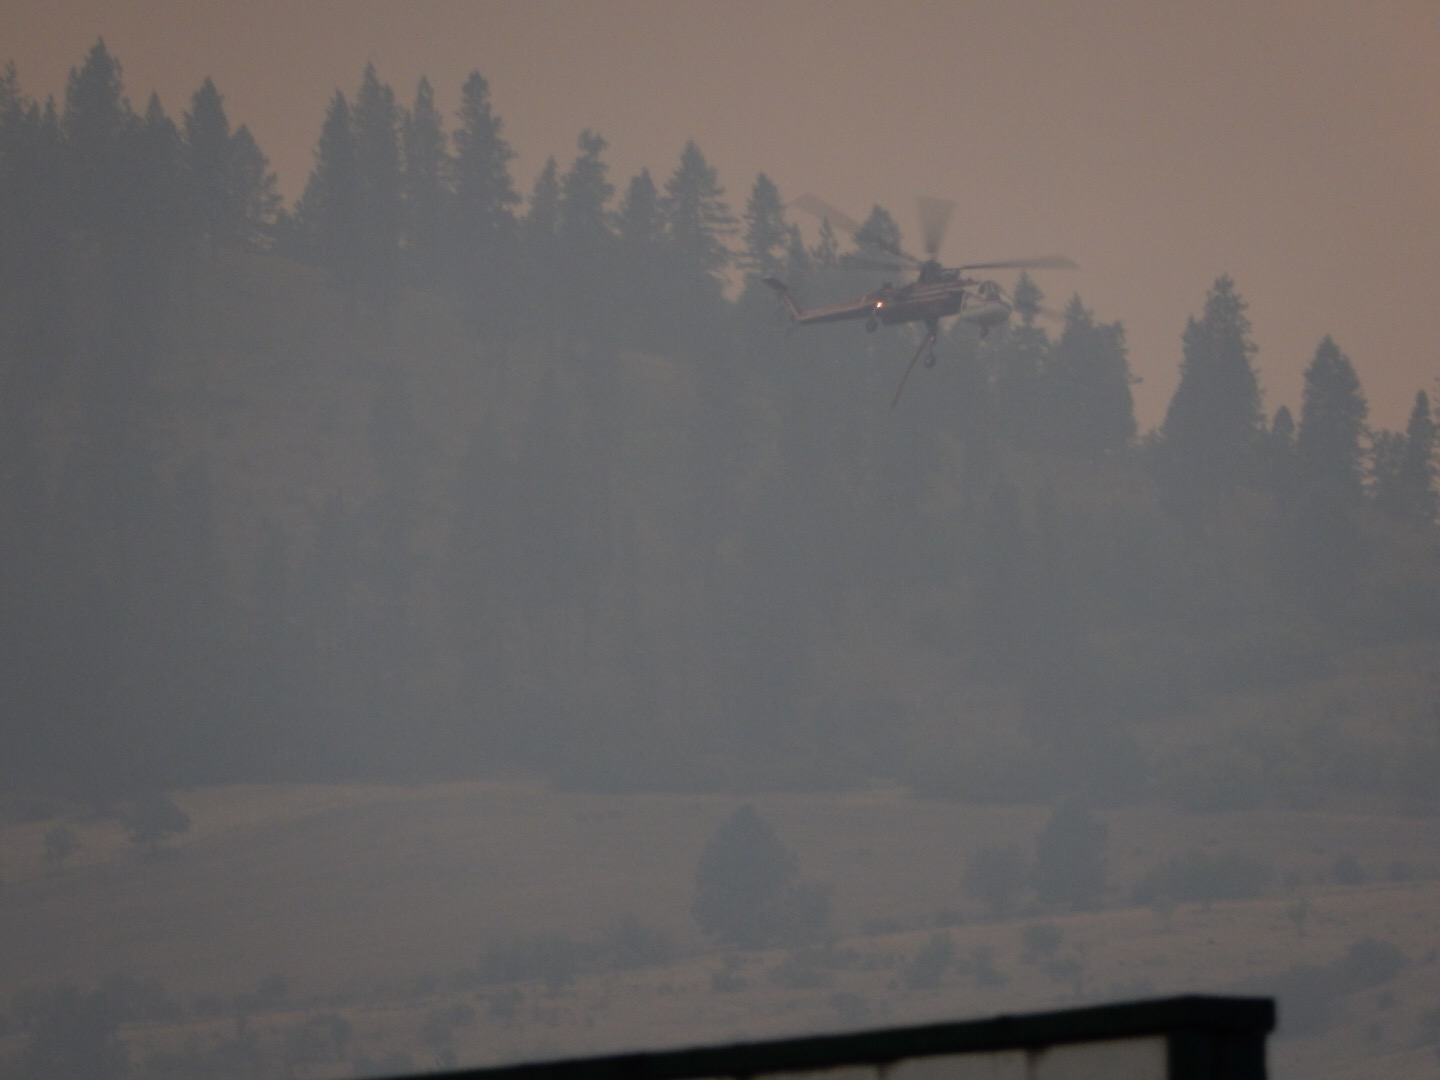 A sky cran helicopter fights the Kamiah wildfire.